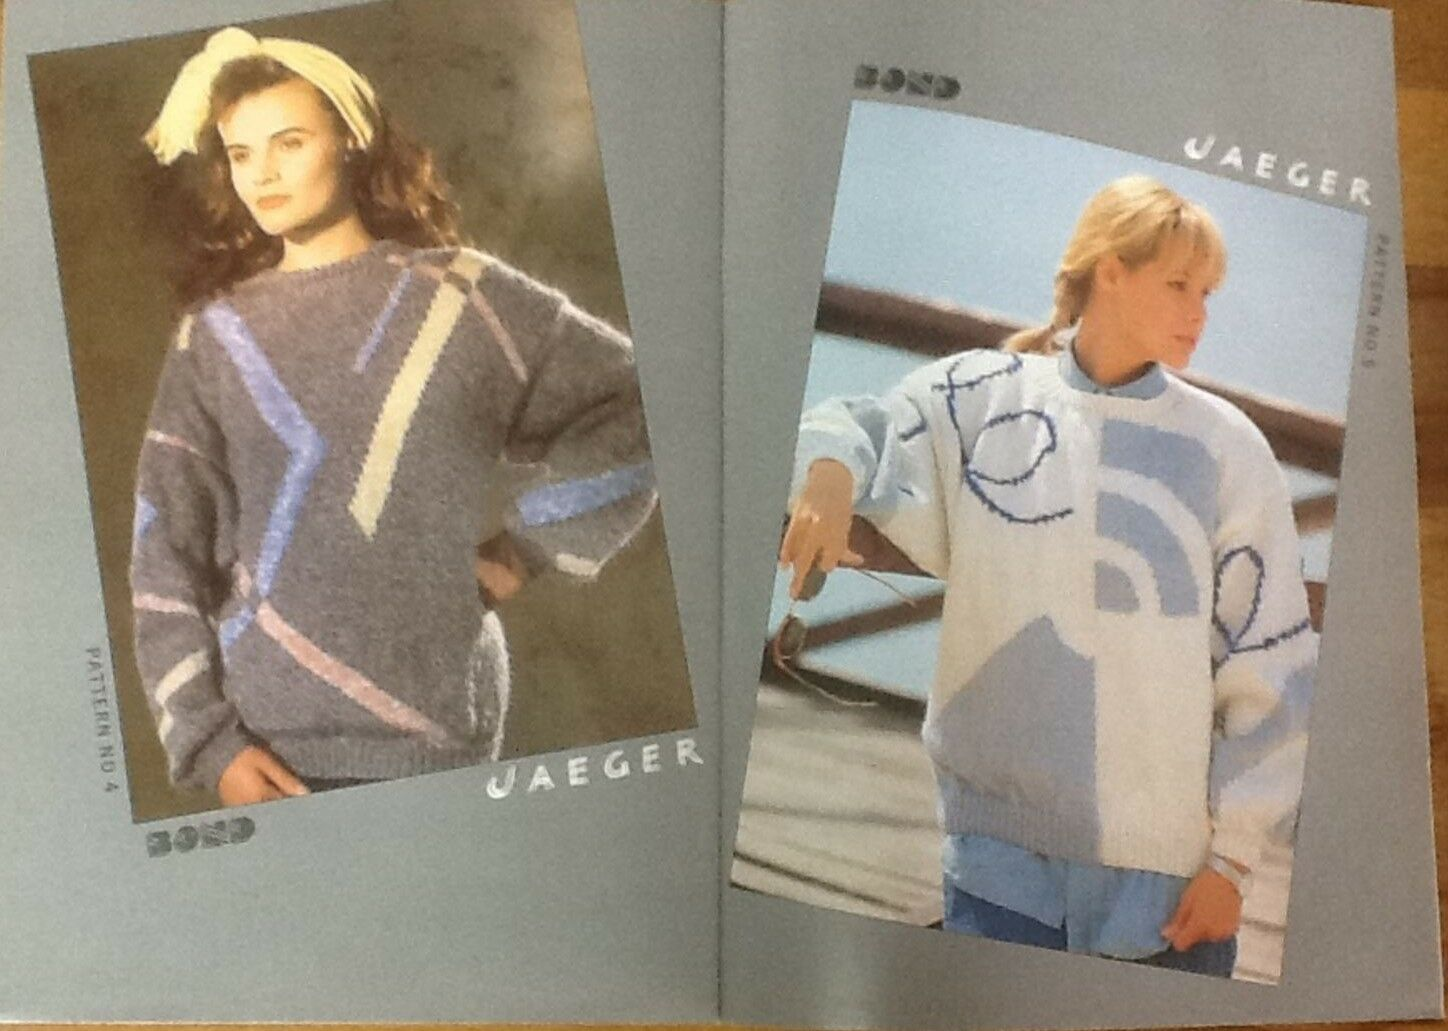 Jaeger collection bond usm ultimate sweater machine knitting brand new lowest price bankloansurffo Images